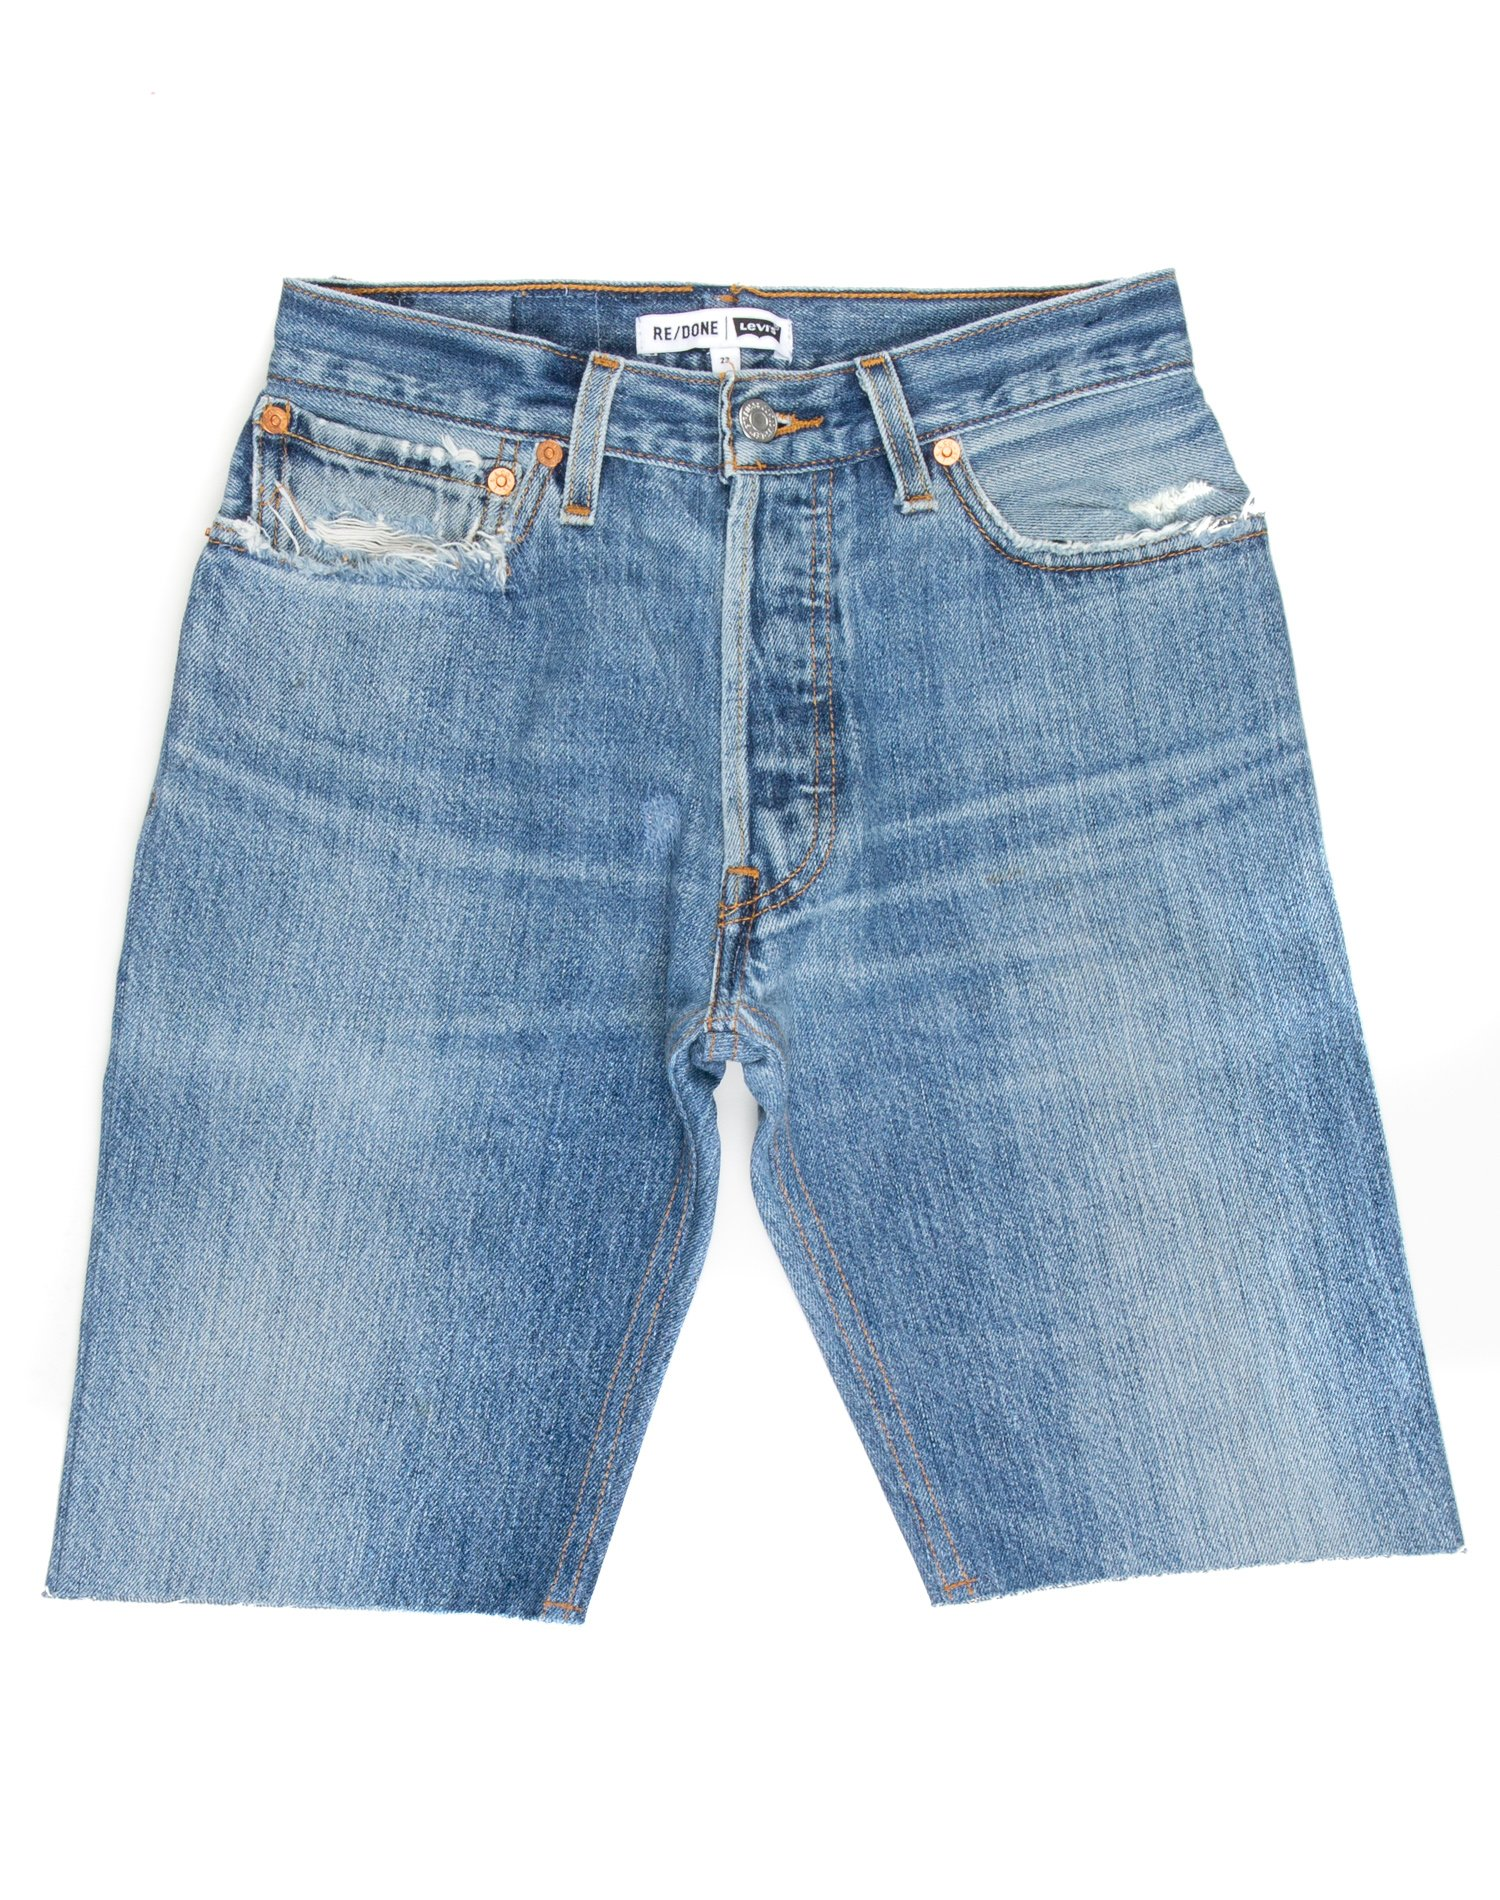 LEVIS RE/DONE